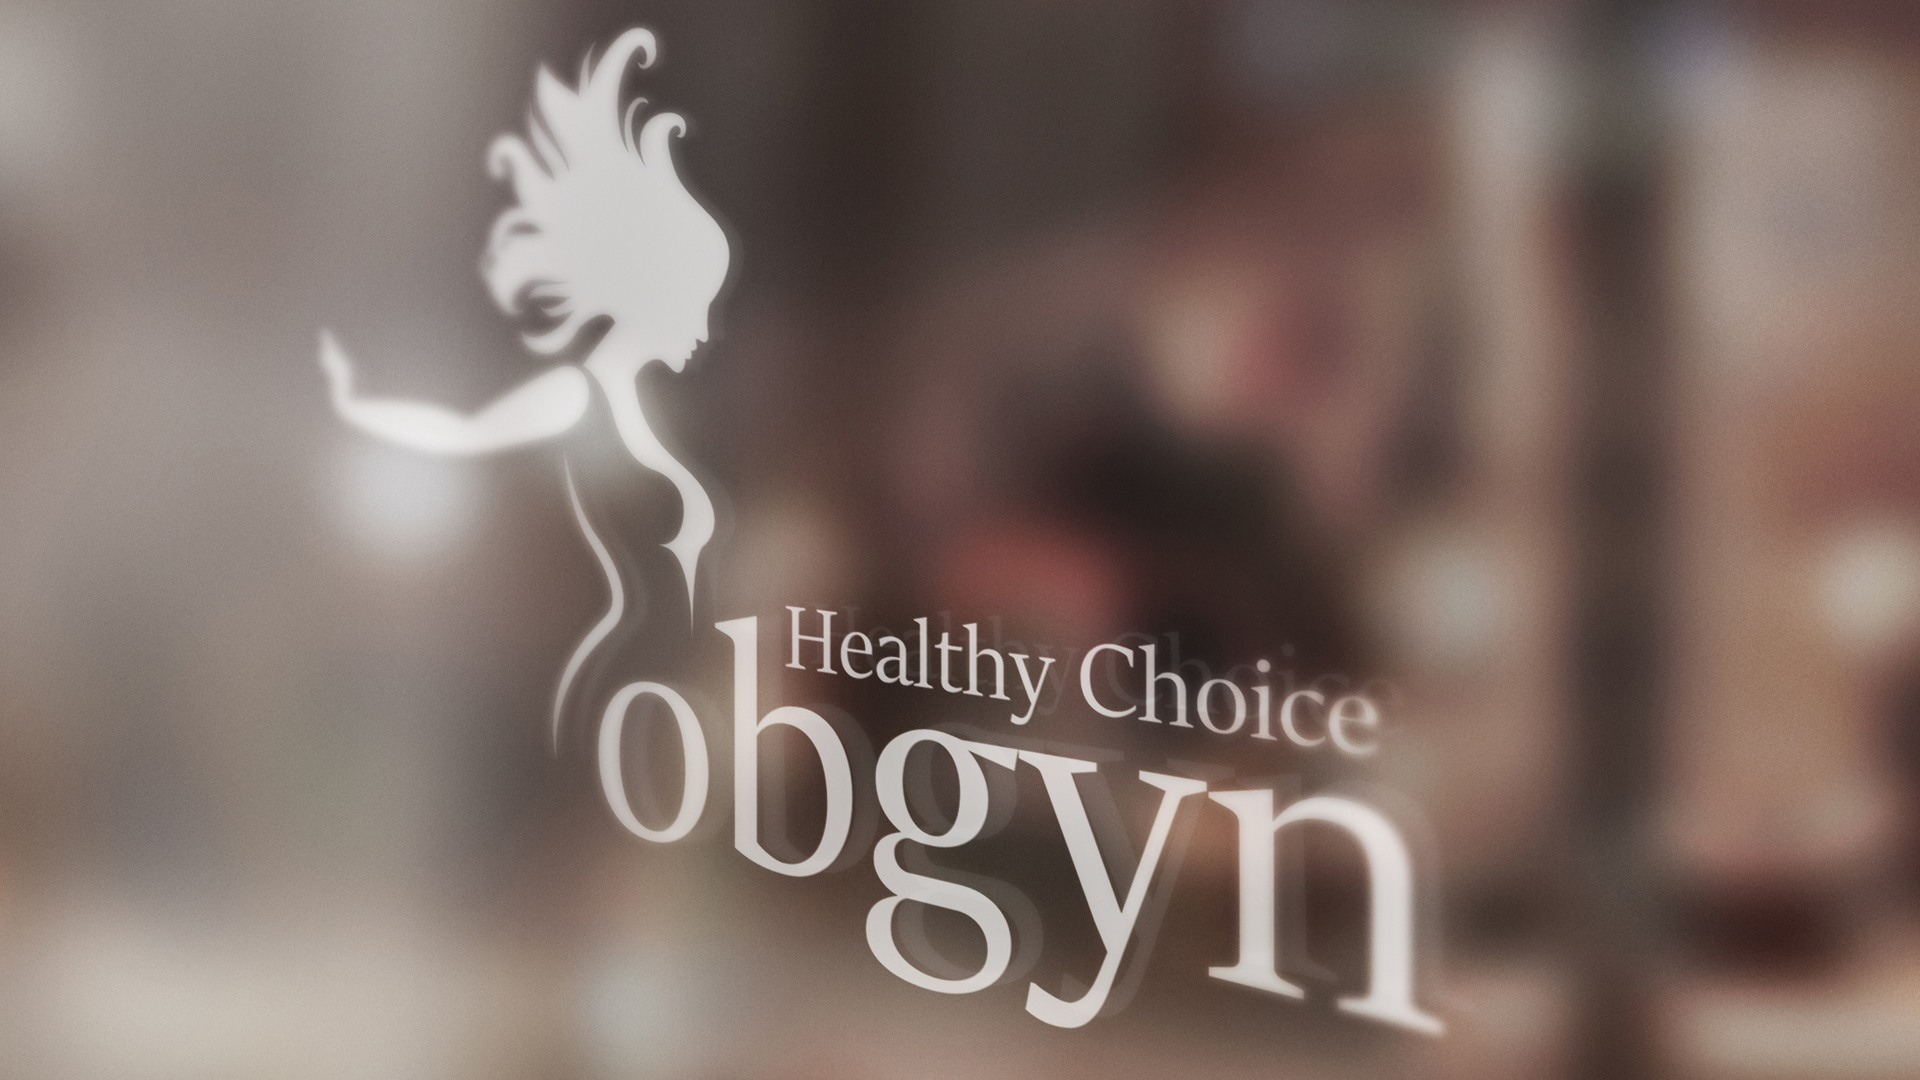 Healthy Choice OB/GYN